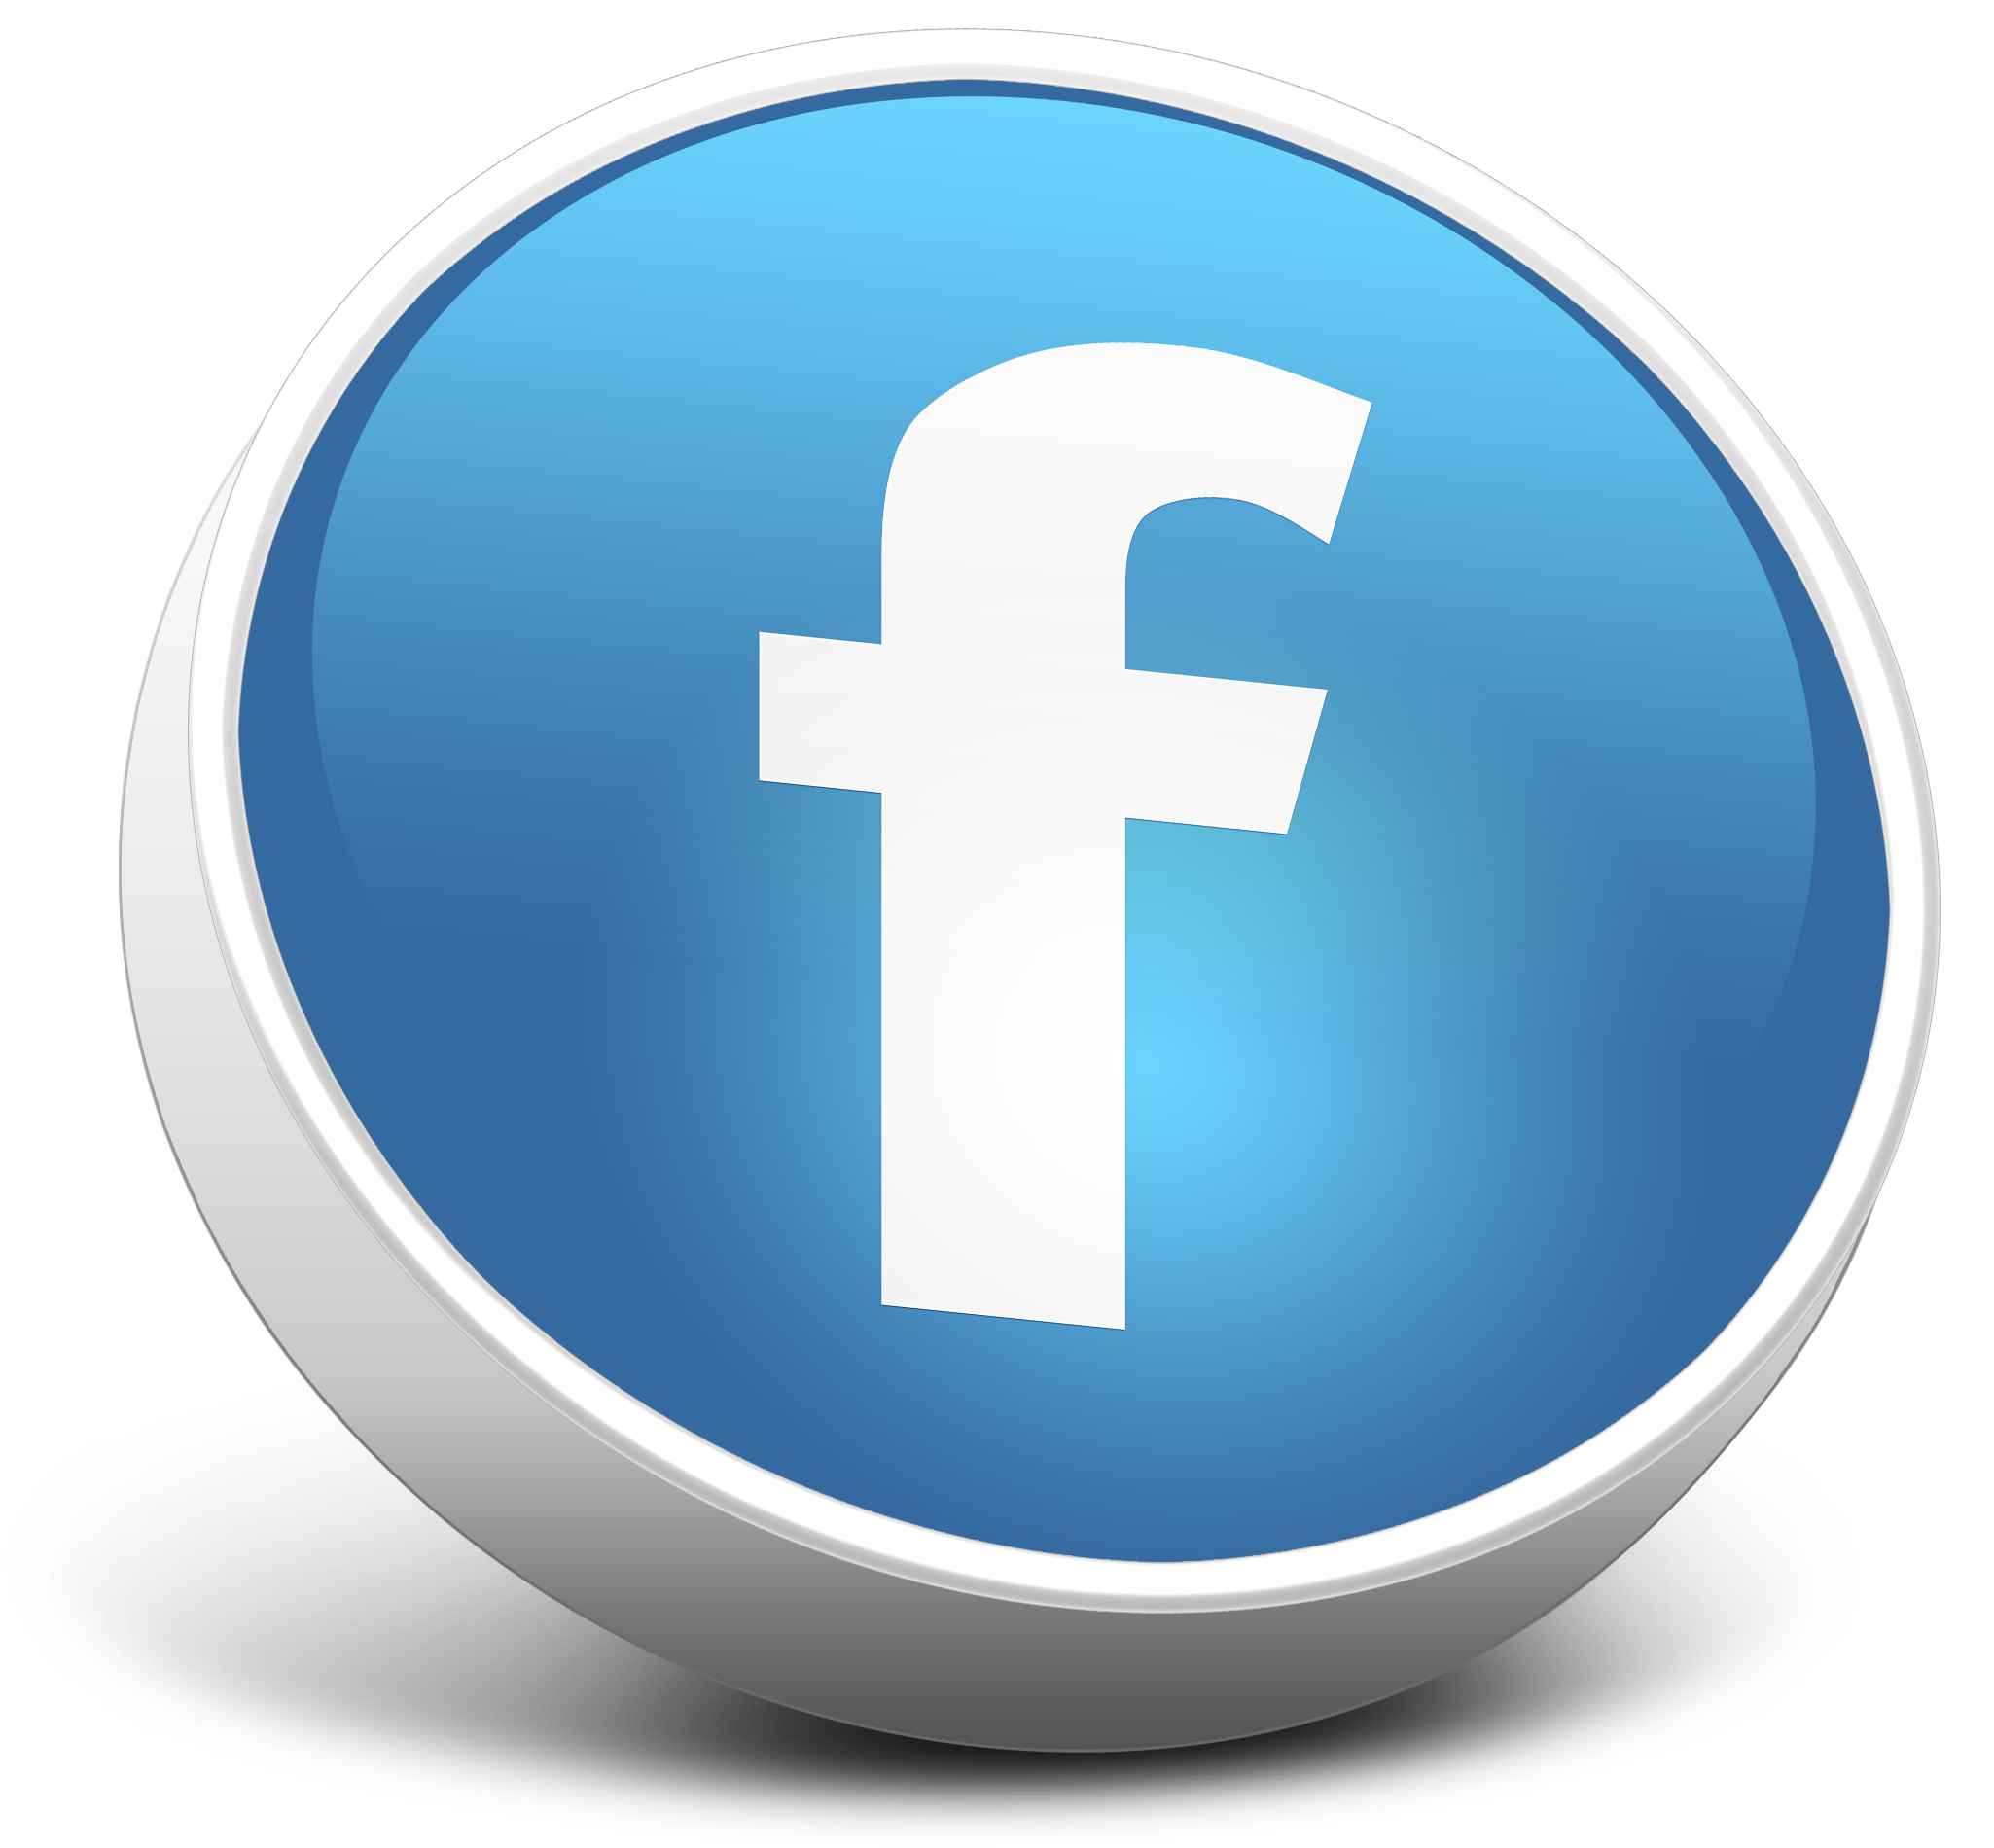 Facebook Computer Icons Desktop Wallpaper Logo.